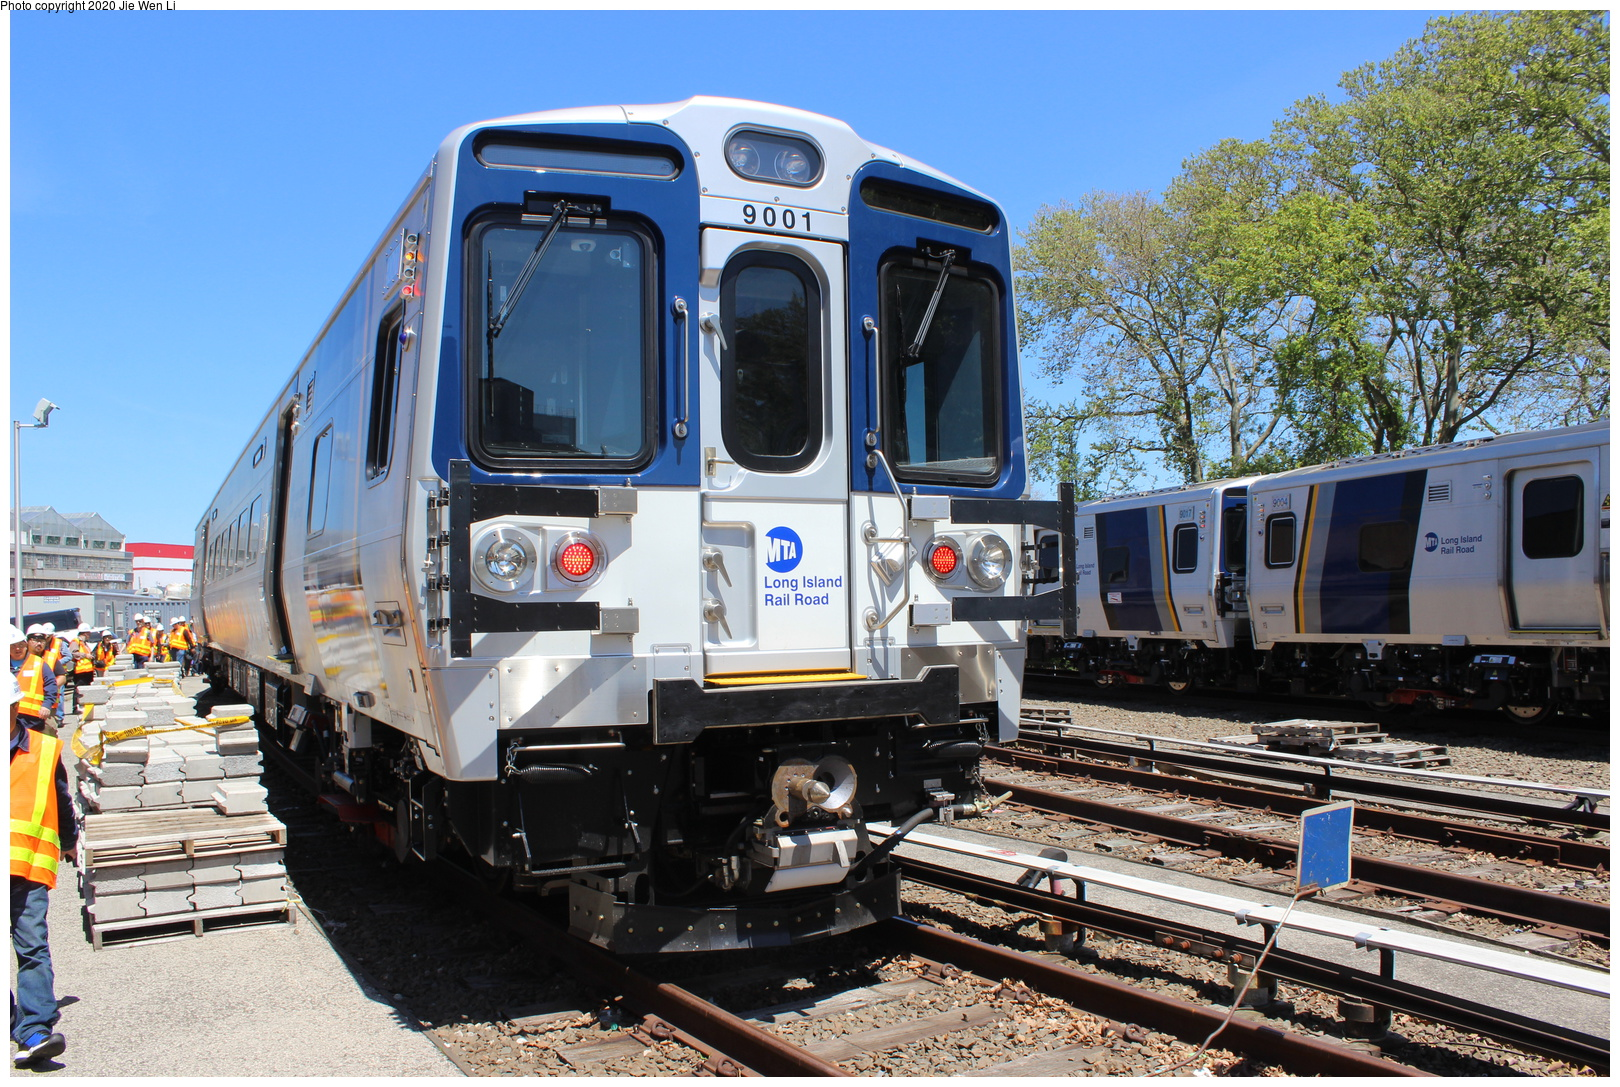 (267k, 1044x988)<br><b>Country:</b> United States<br><b>City:</b> New York<br><b>System:</b> New York City Transit<br><b>Line:</b> 9th Avenue El<br><b>Location:</b> 155th Street <br><b>Car:</b> Low-V 4215 <br><b>Photo by:</b> Joel Shanus<br><b>Viewed (this week/total):</b> 2 / 1972